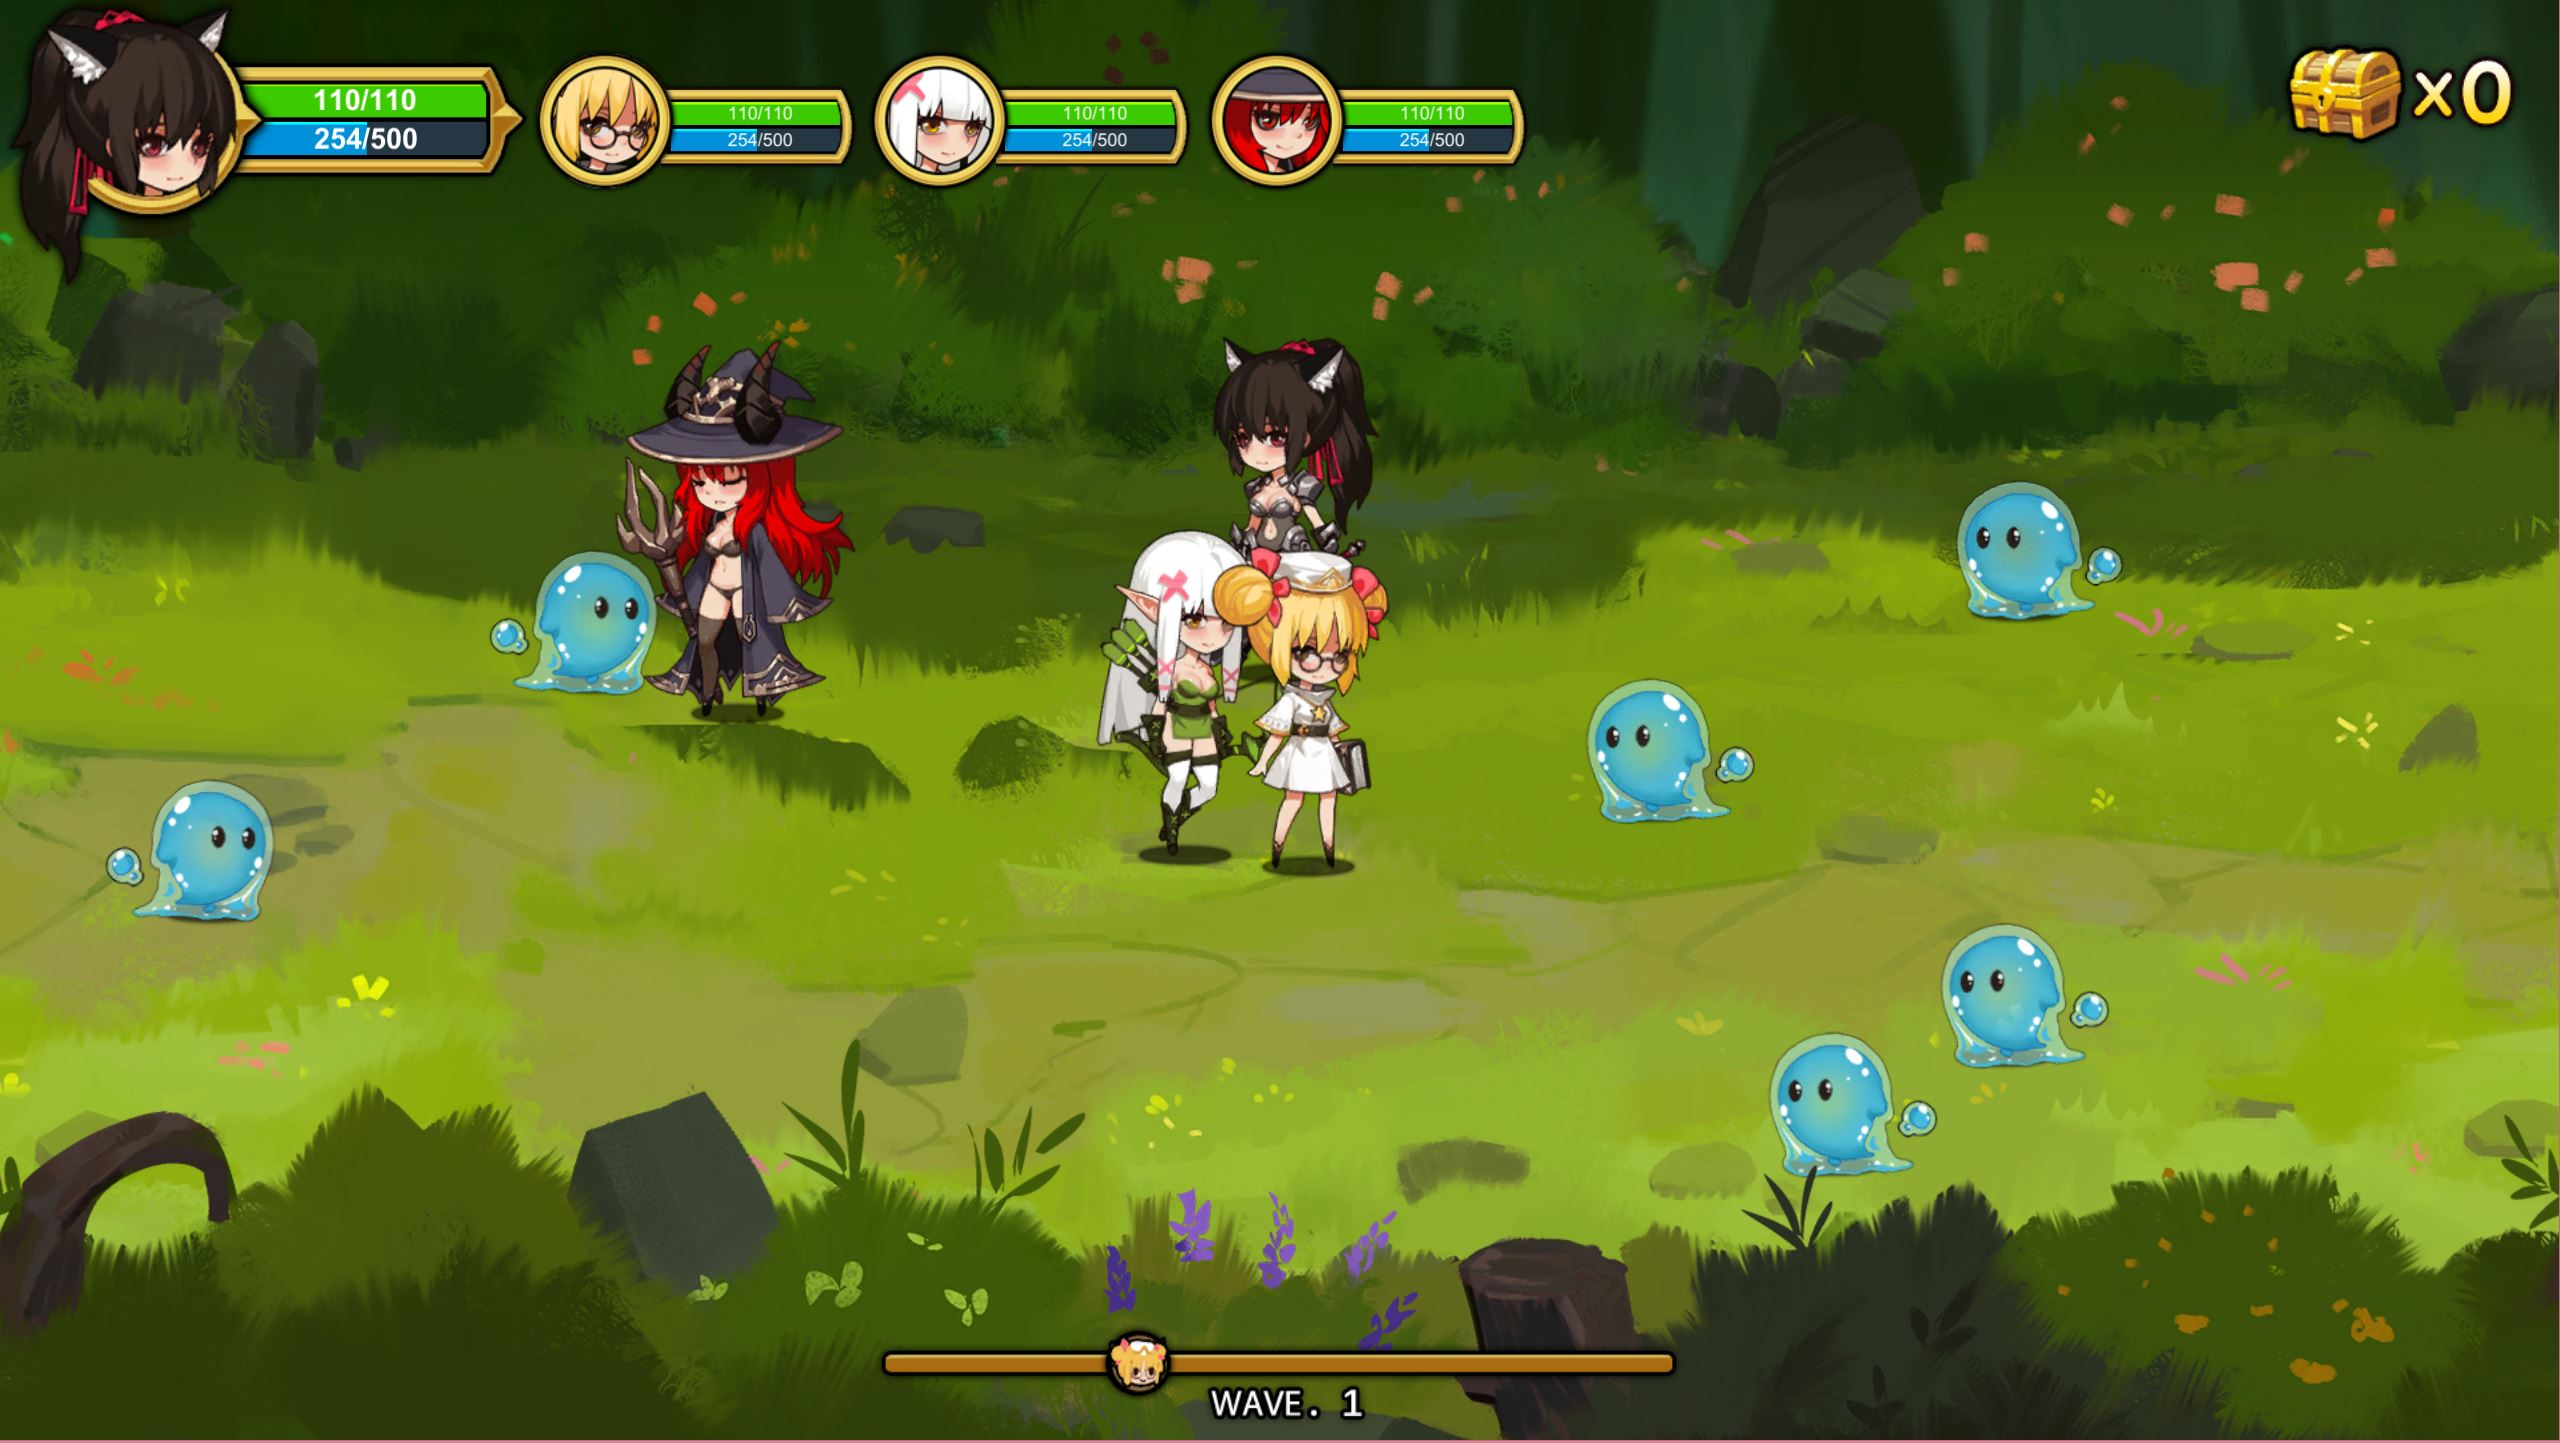 Treasure Chest Corps - Fight Demons to Restore the Barrier screenshot 1